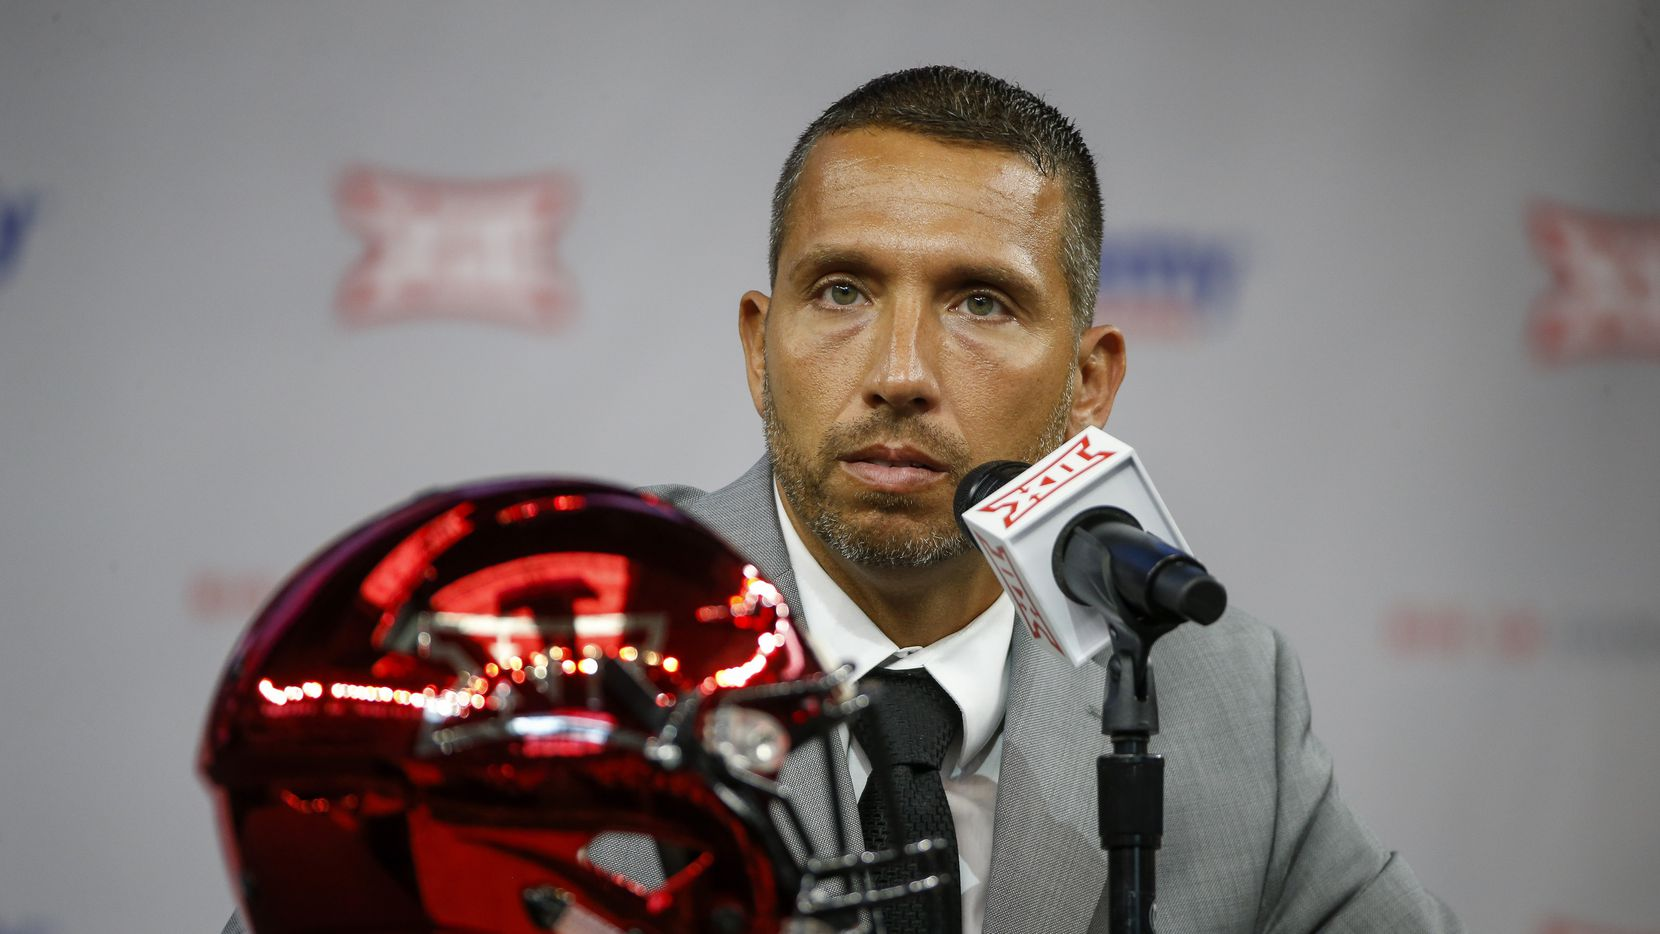 Iowa State head football coach Matt Campbell speaks during the Big 12 Conference Media Days at AT&T Stadium on Wednesday, July 14, 2021, in Arlington.